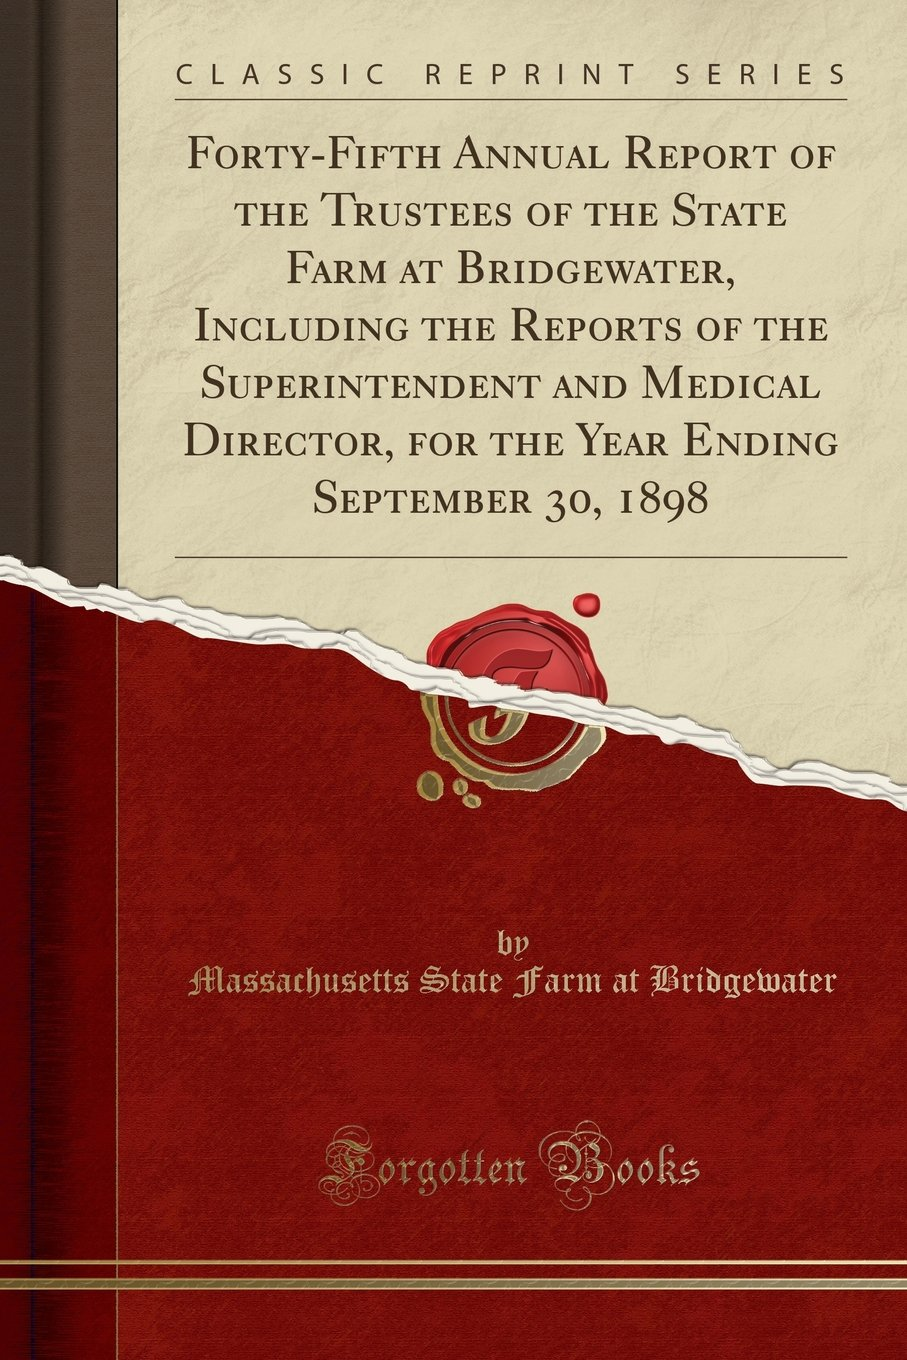 Forty-Fifth Annual Report of the Trustees of the State Farm at Bridgewater, Including the Reports of the Superintendent and Medical Director, for the Year Ending September 30, 1898 (Classic Reprint) pdf